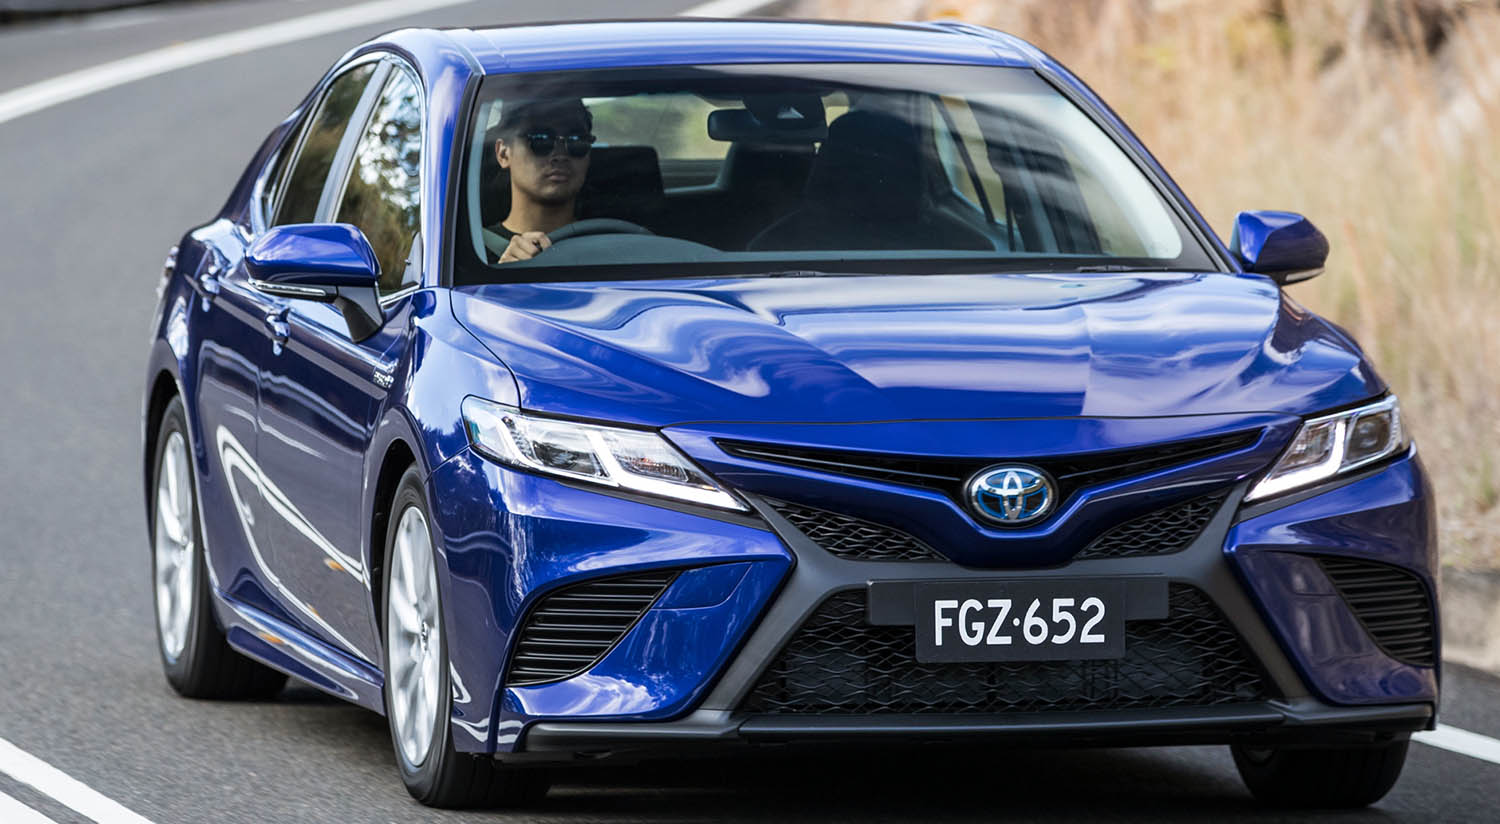 What Makes The Toyota Camry So Popular?